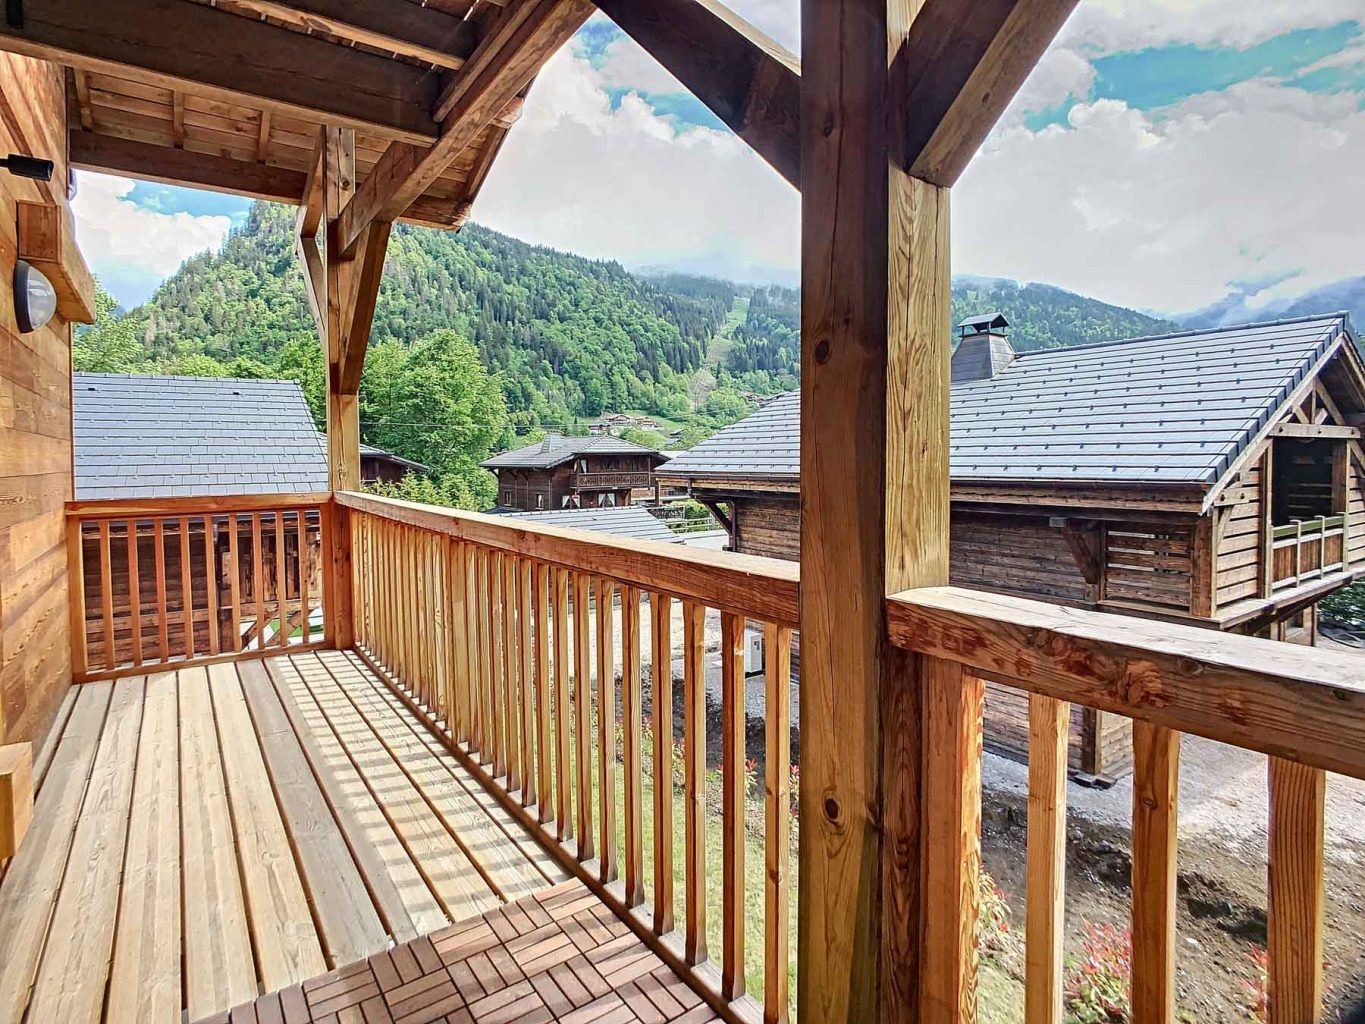 Morzine PDLP Appt 1050 Covered Balcony